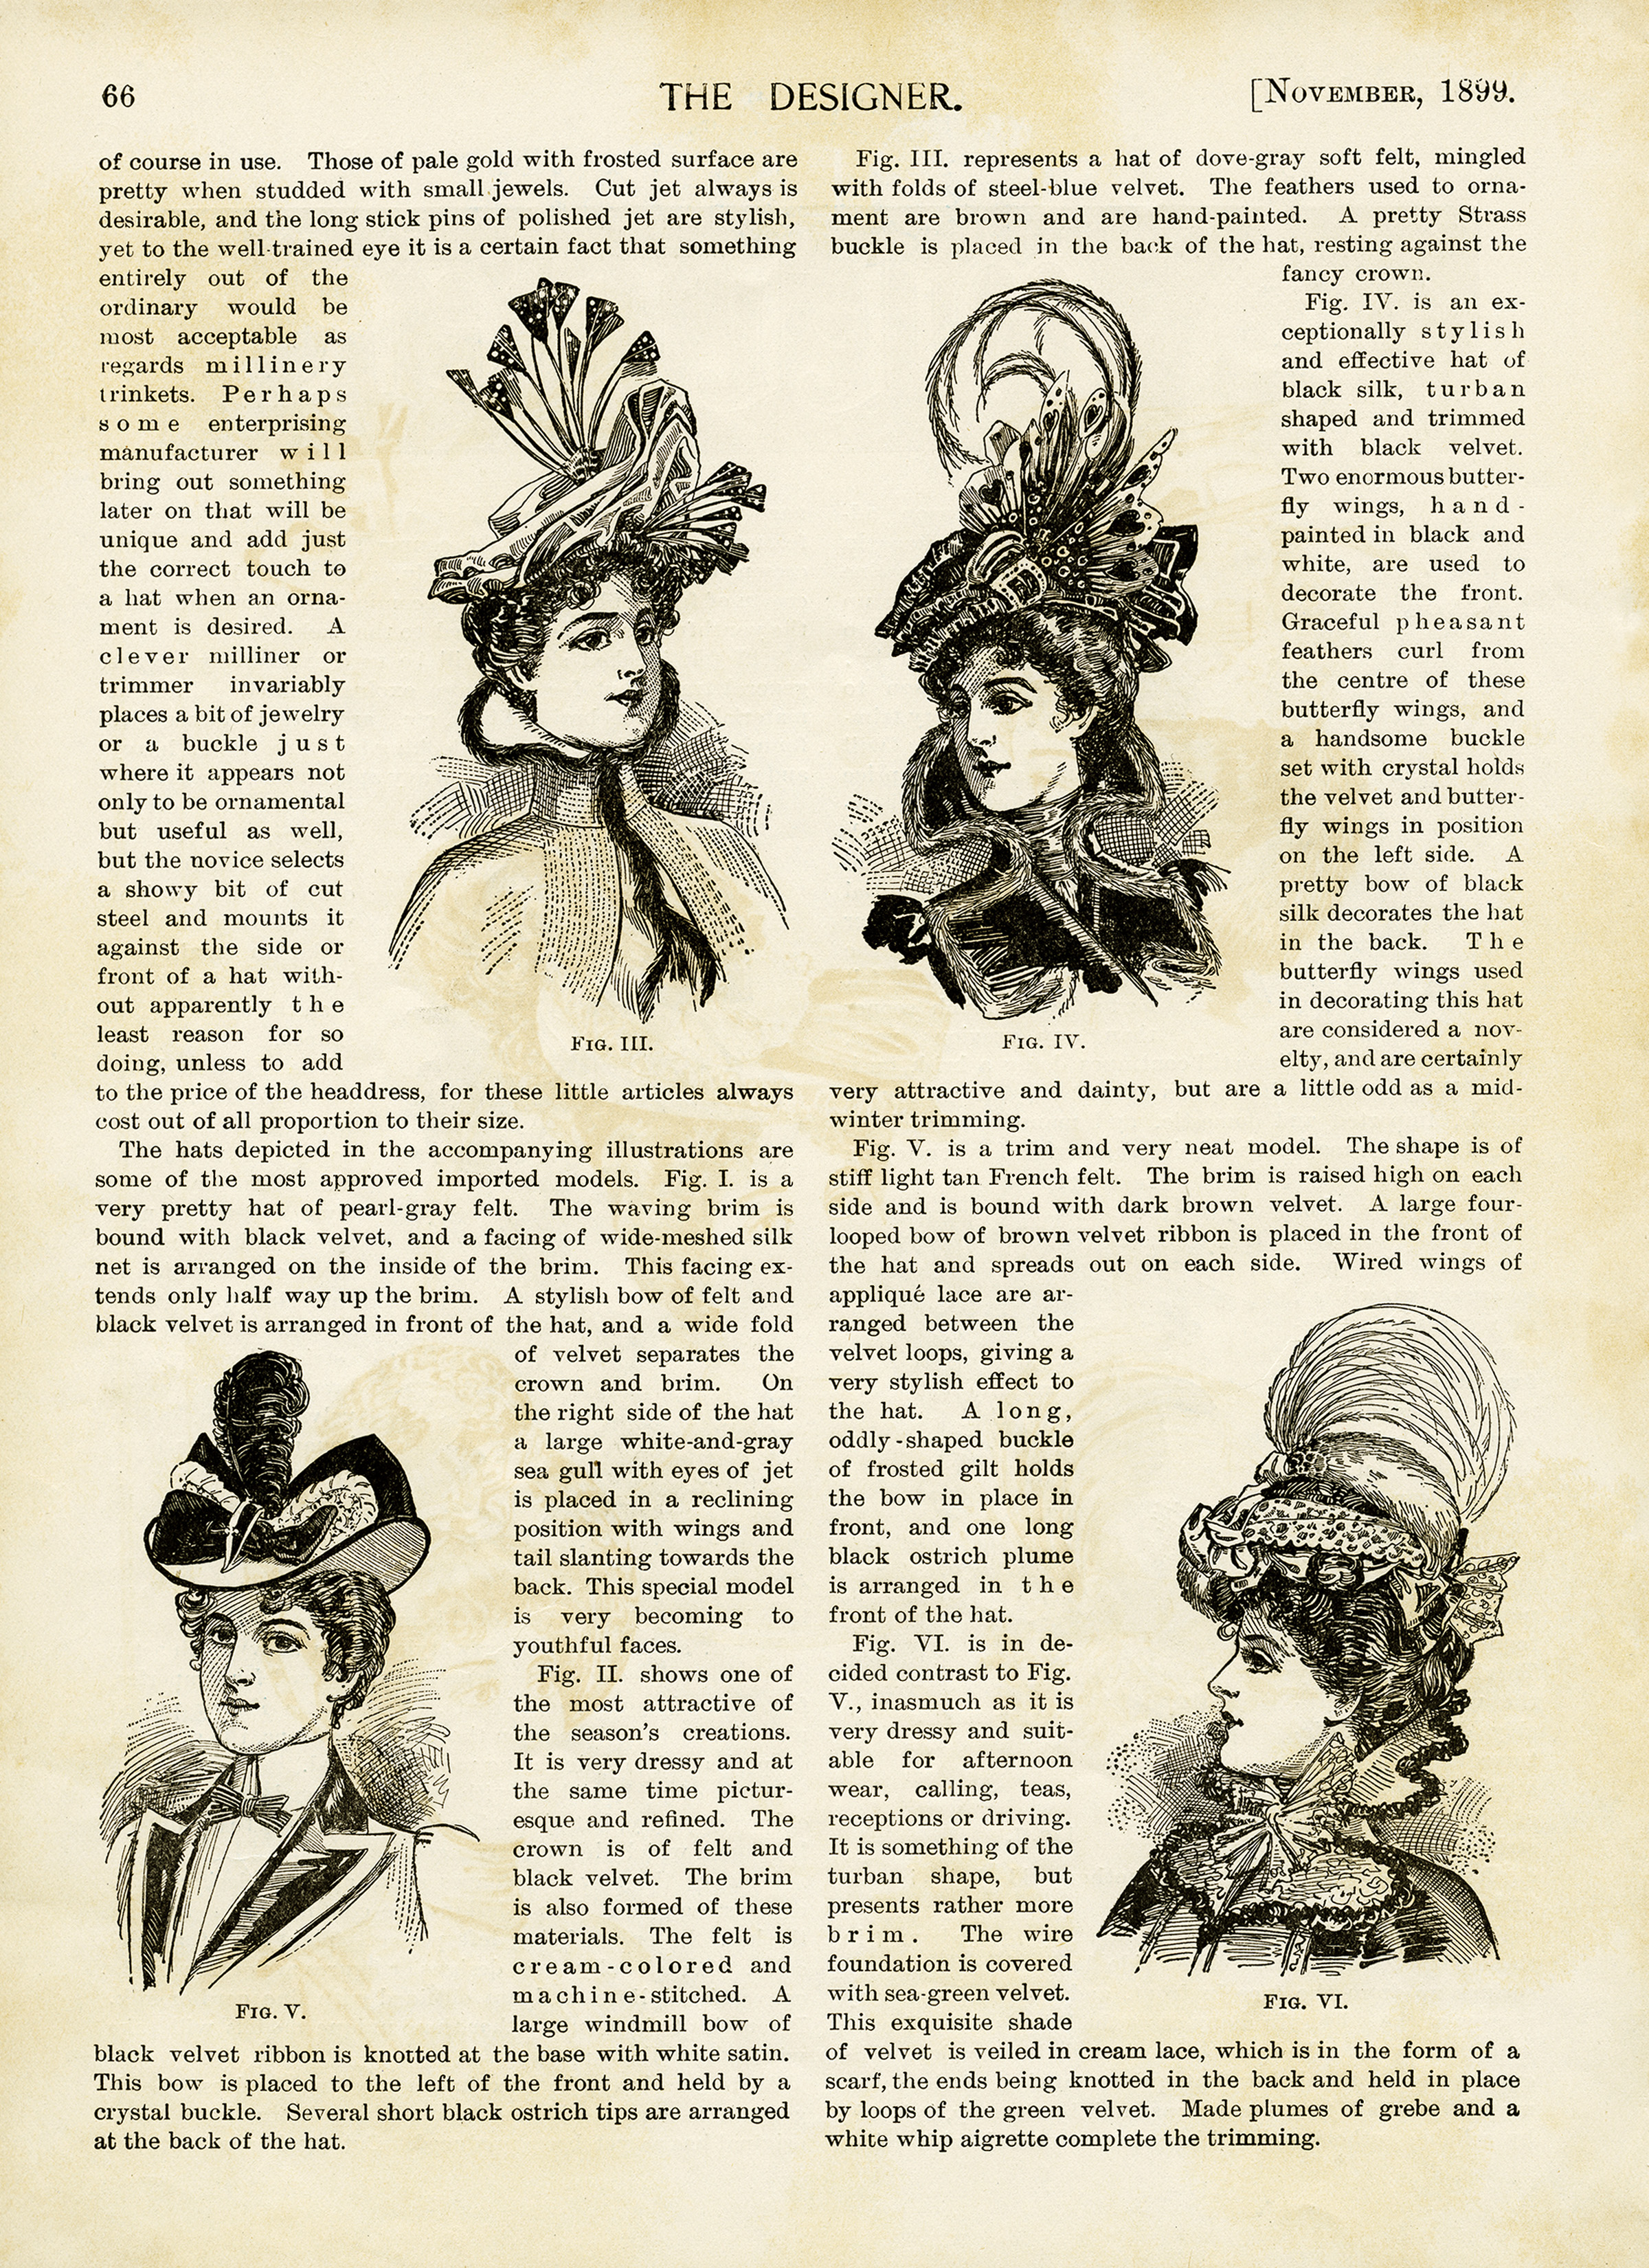 Vintage Fashion Articles